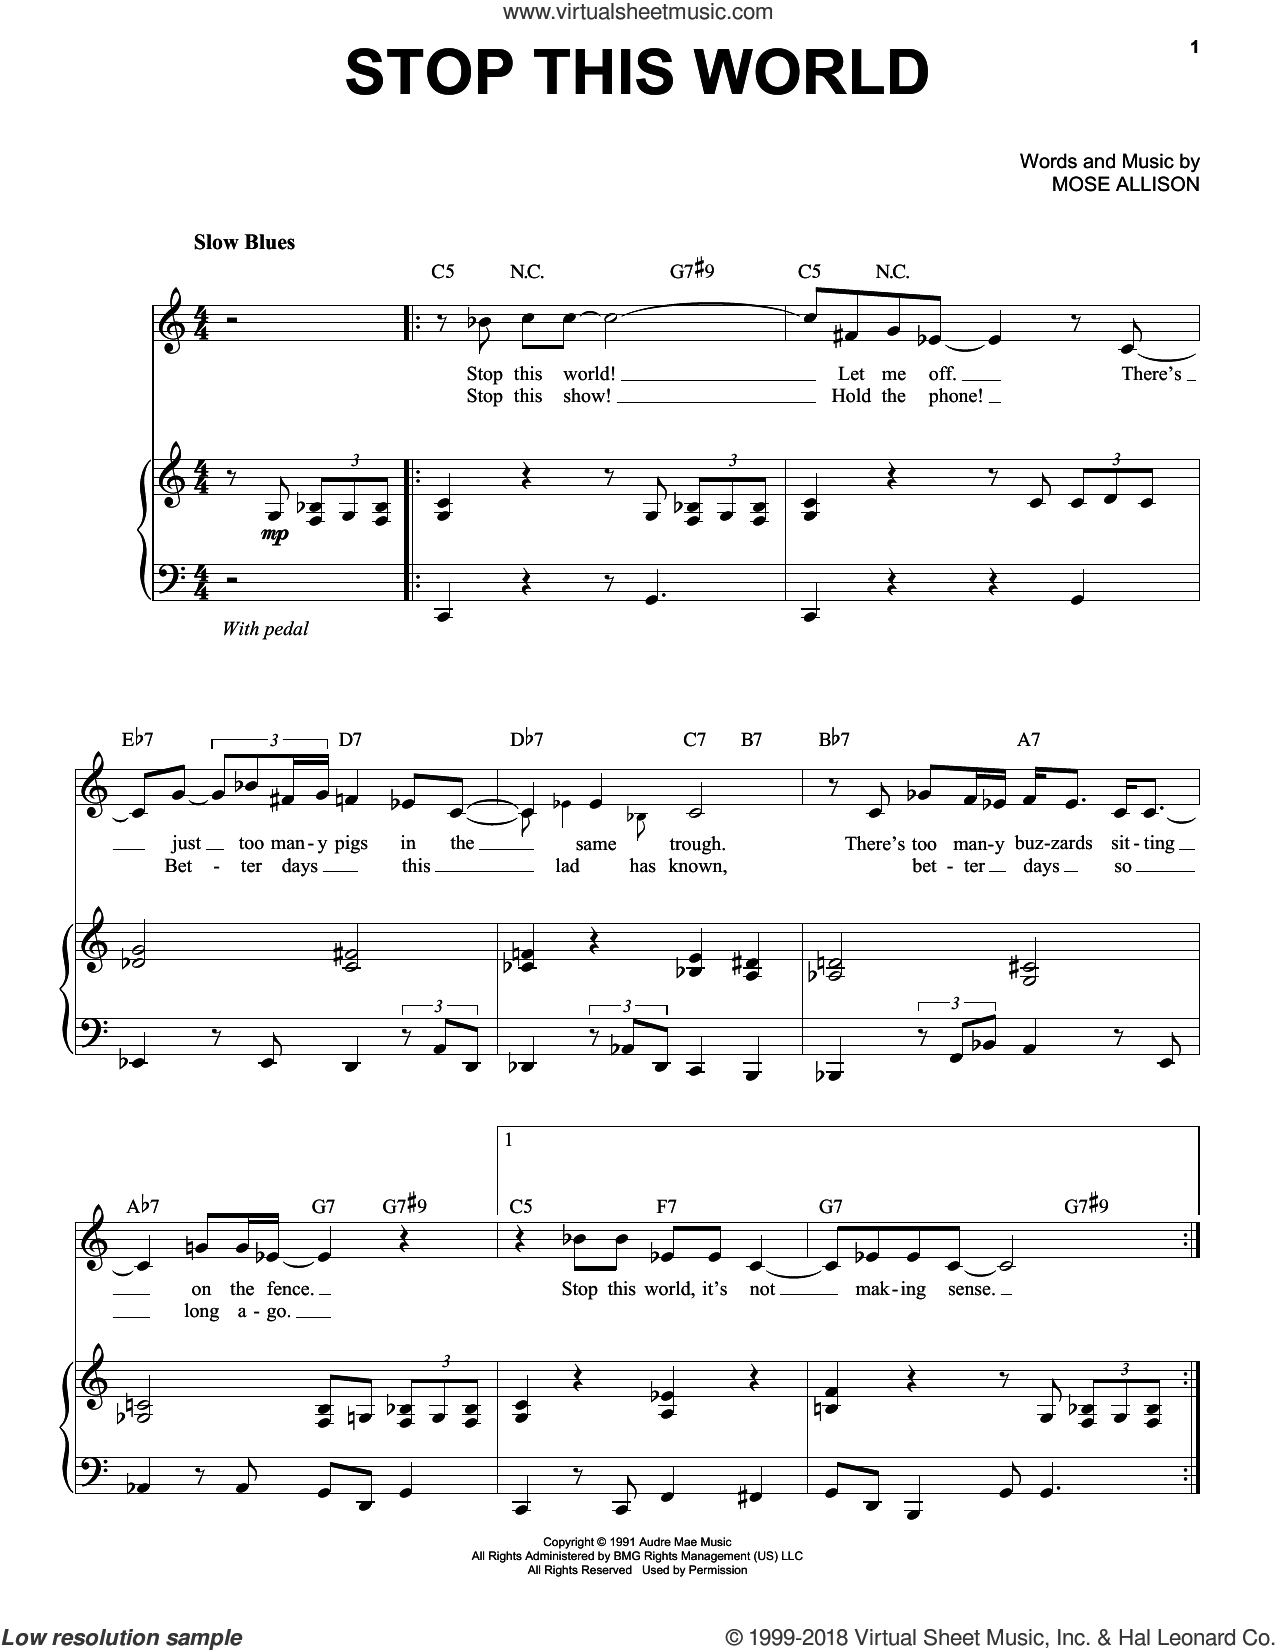 Stop This World sheet music for voice and piano by Mose Allison and Diana Krall, intermediate skill level